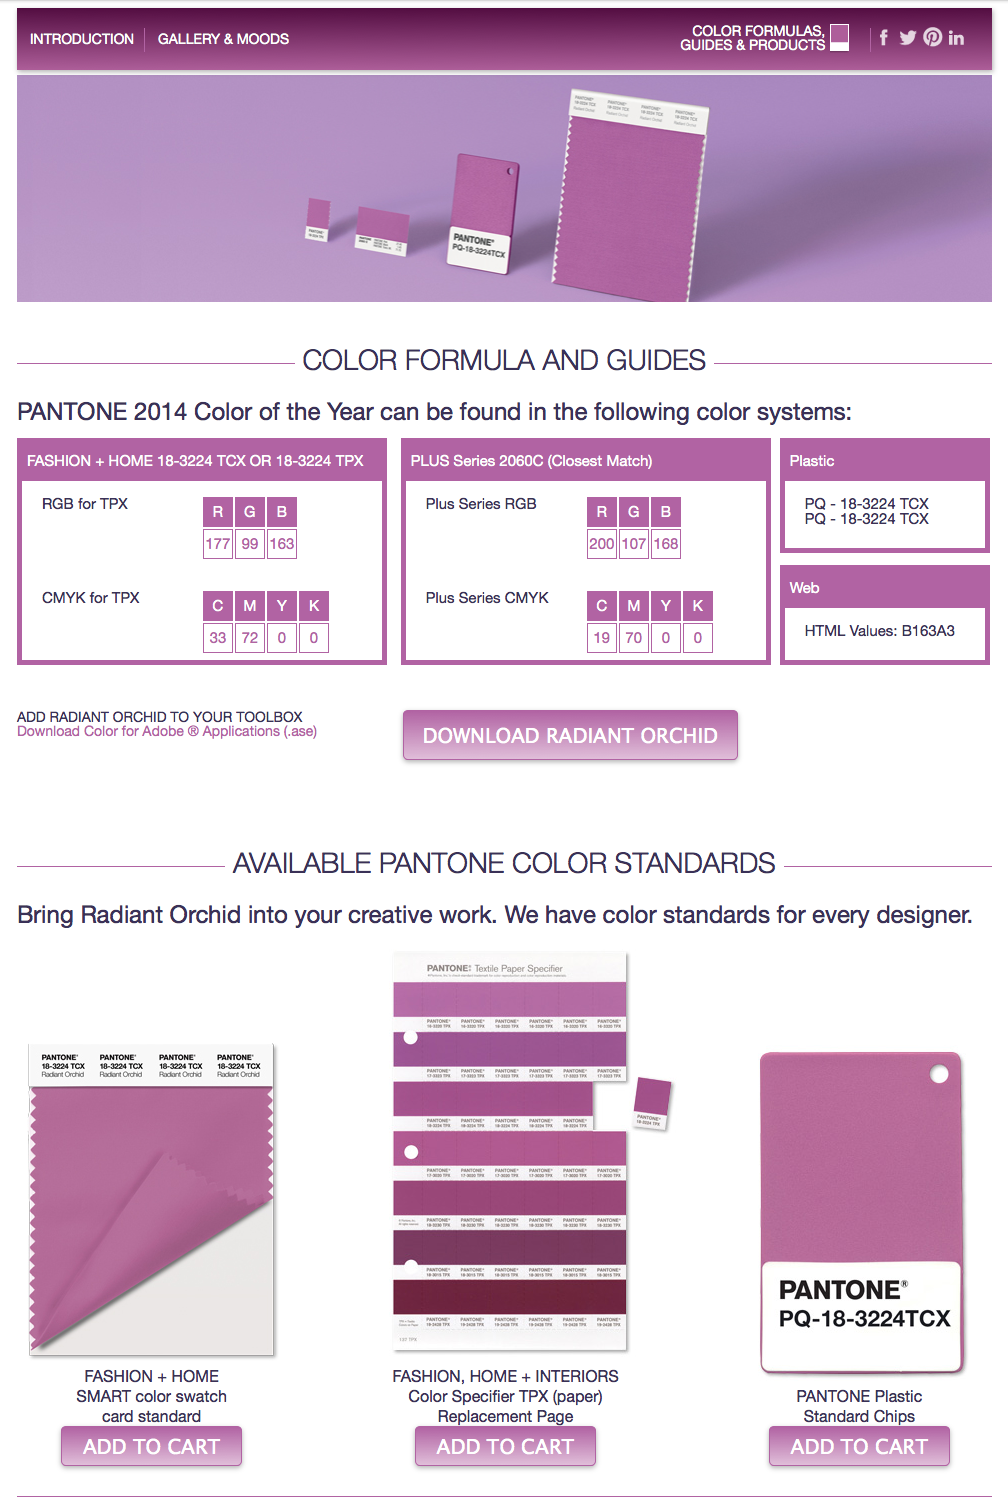 pantone radiant orchid color guide